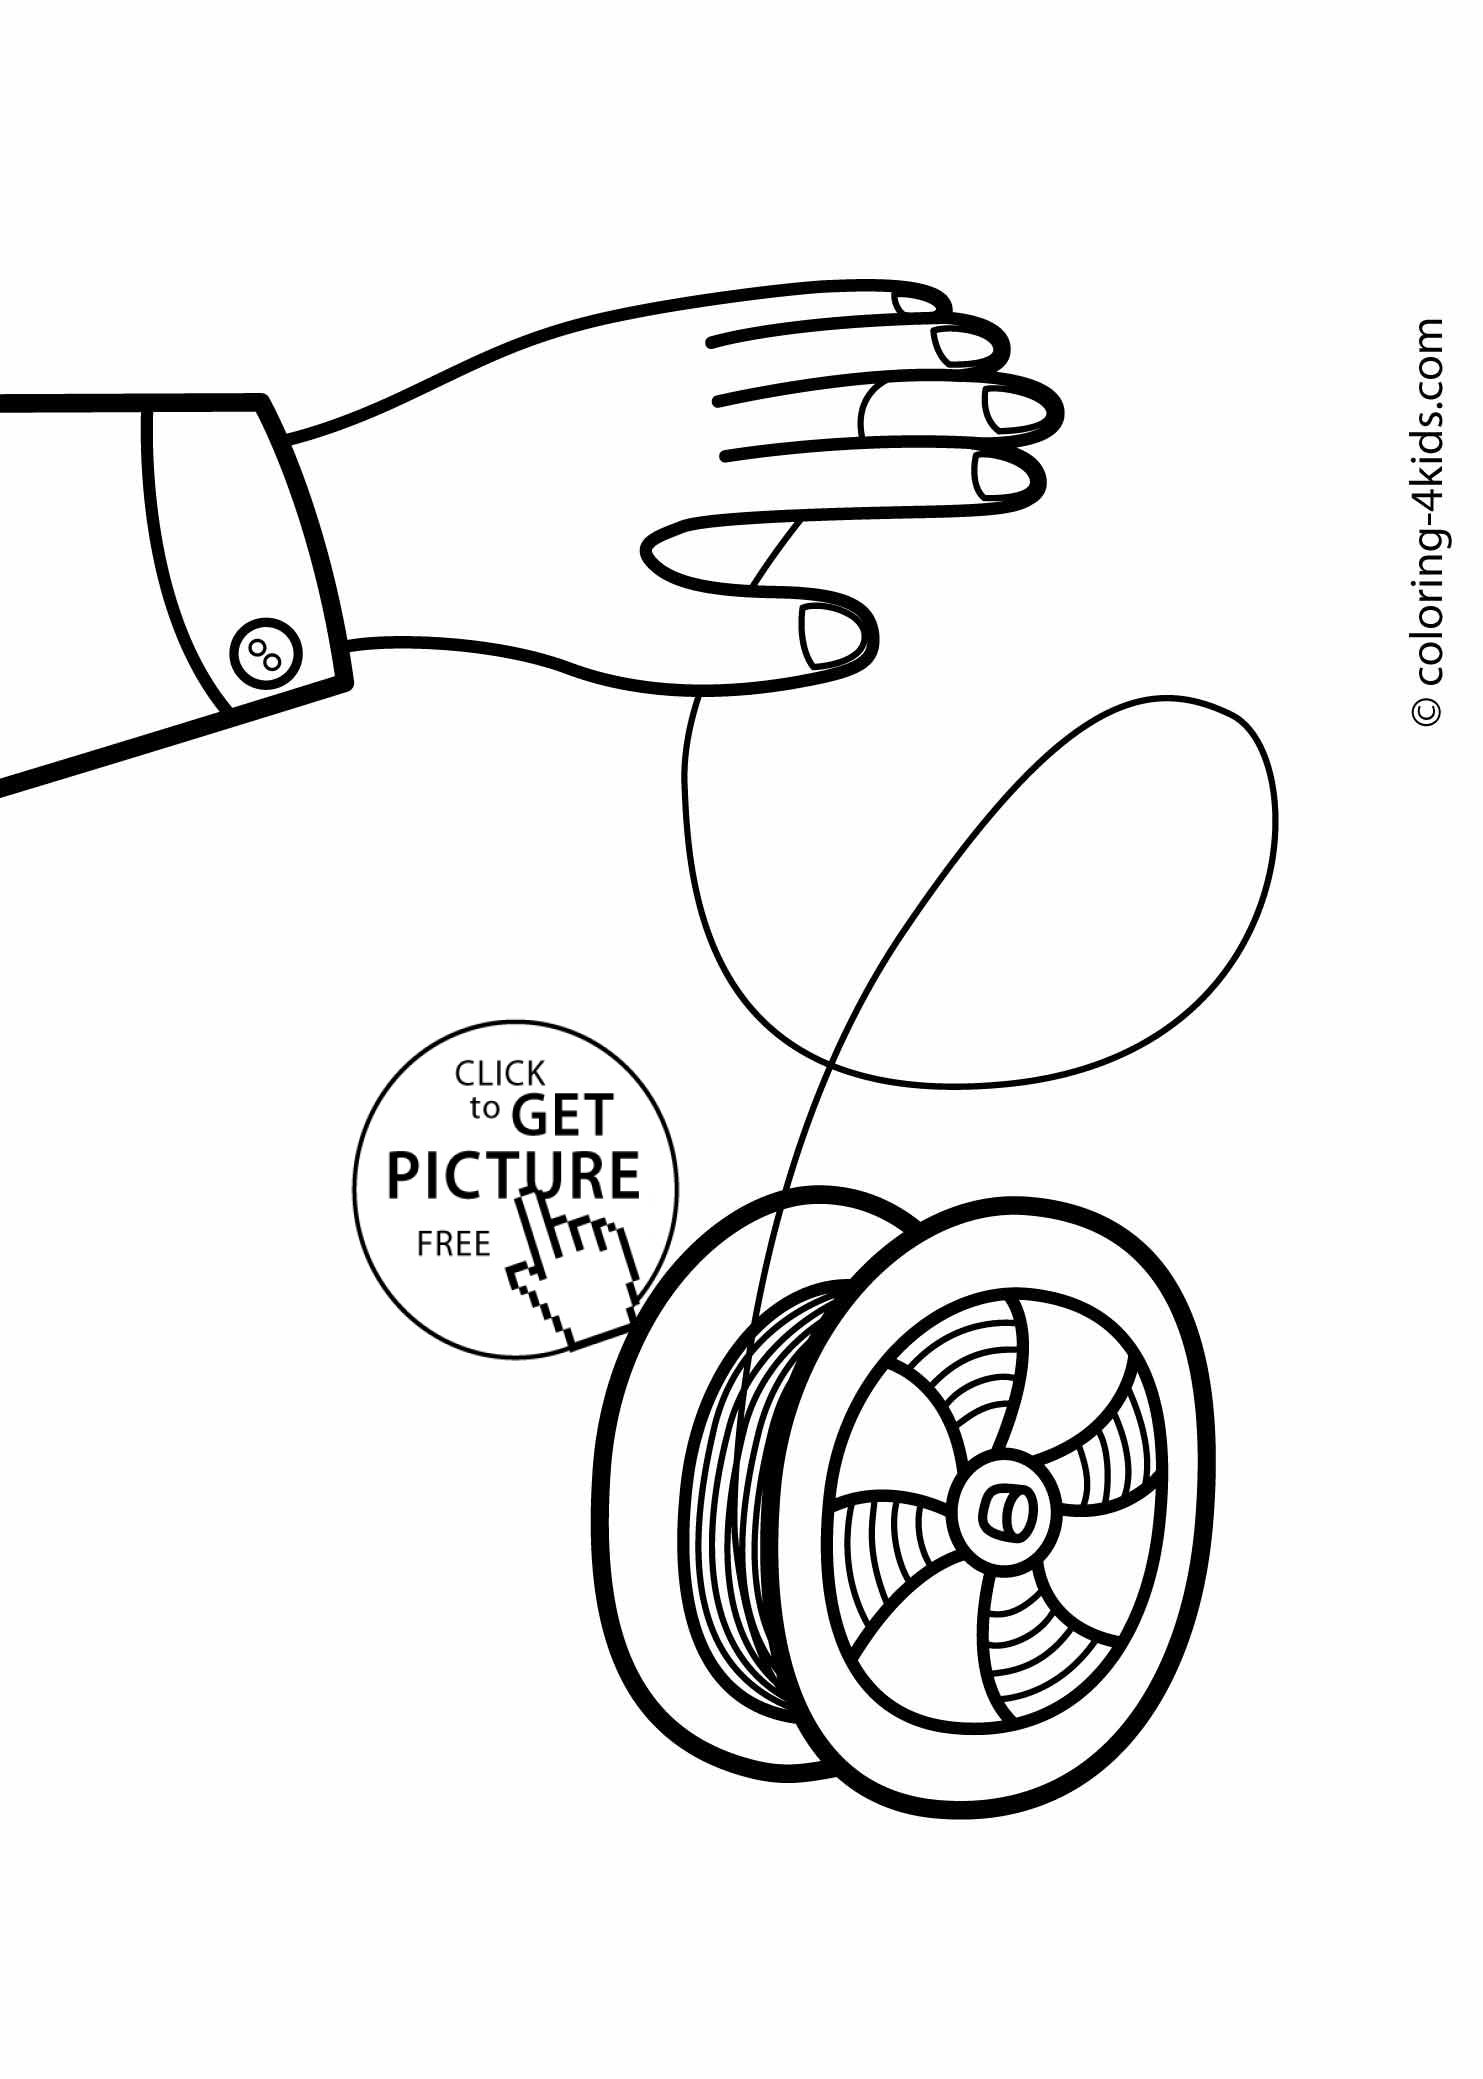 Do Yoyo Colouring Pages Sketch Coloring Page